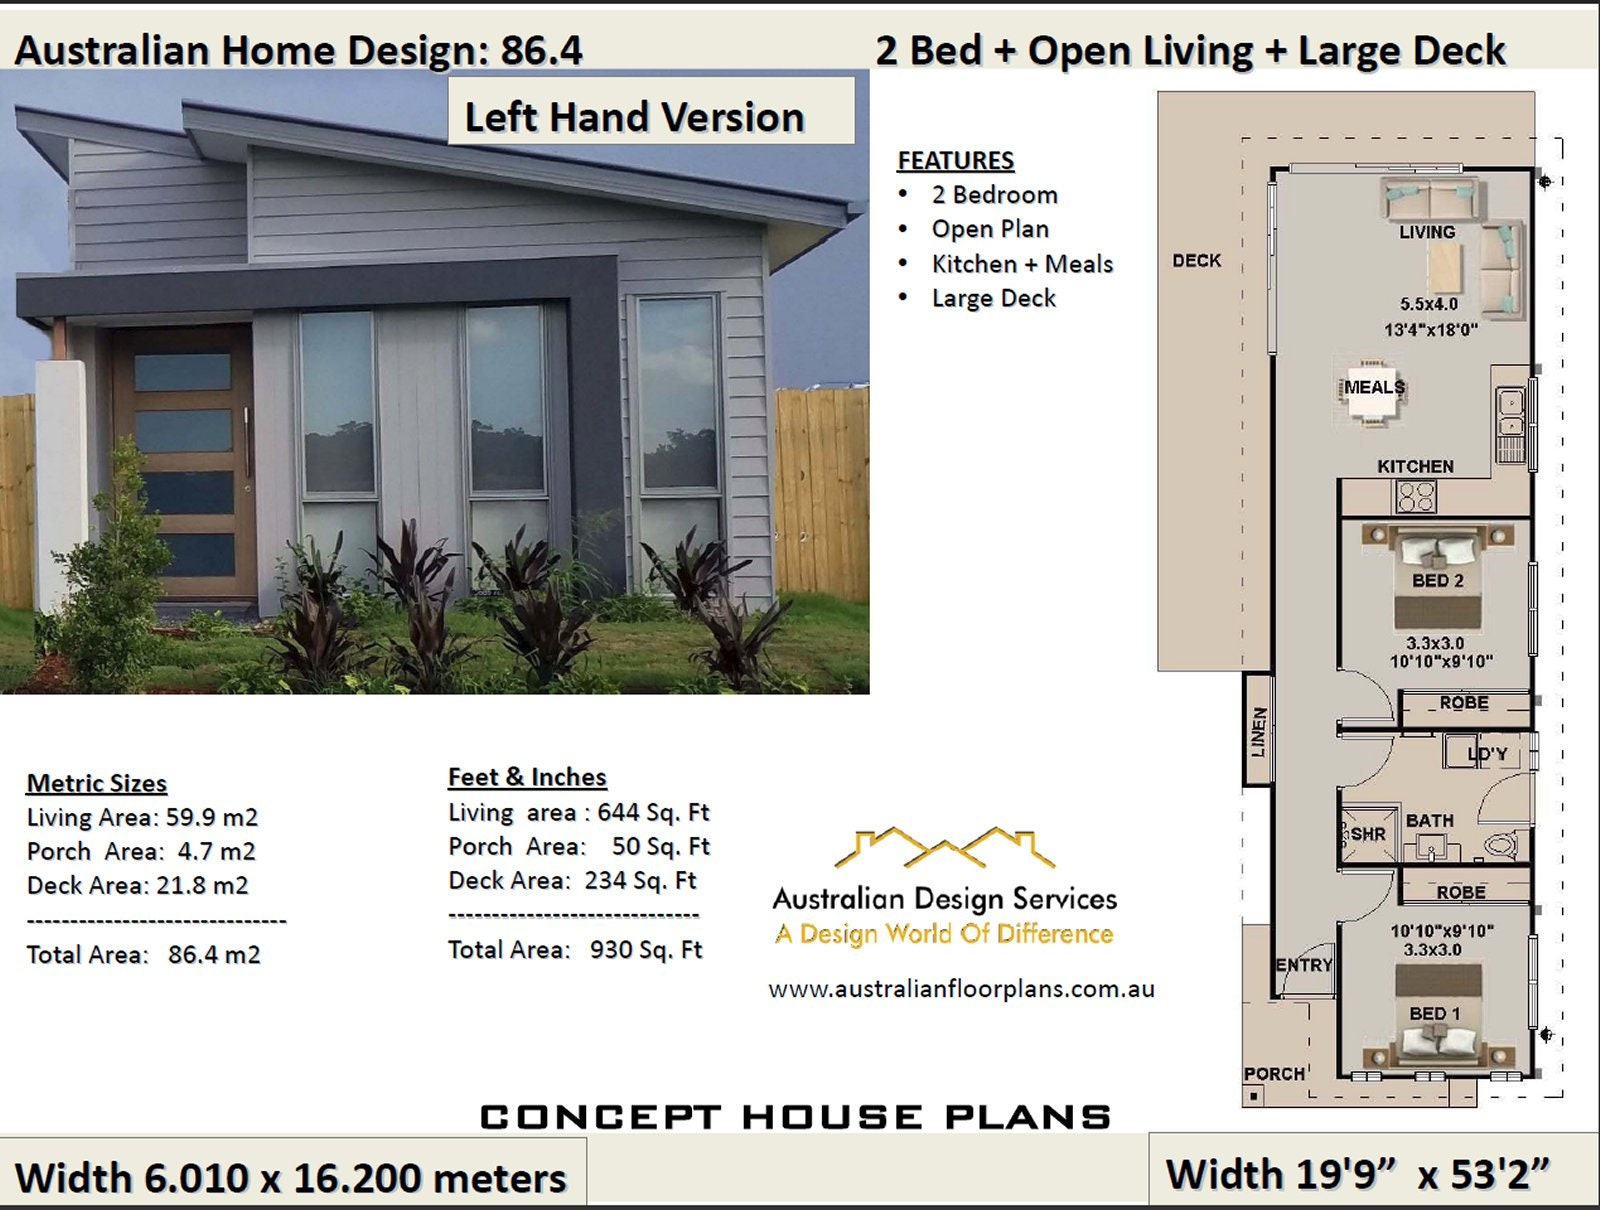 Sensational 59 9 M2 644 Sq Foot 2 Bedroom House Plan 86 4 Narrow Lot Small House Design Concept House Plans For Sale Interior Design Ideas Gentotryabchikinfo